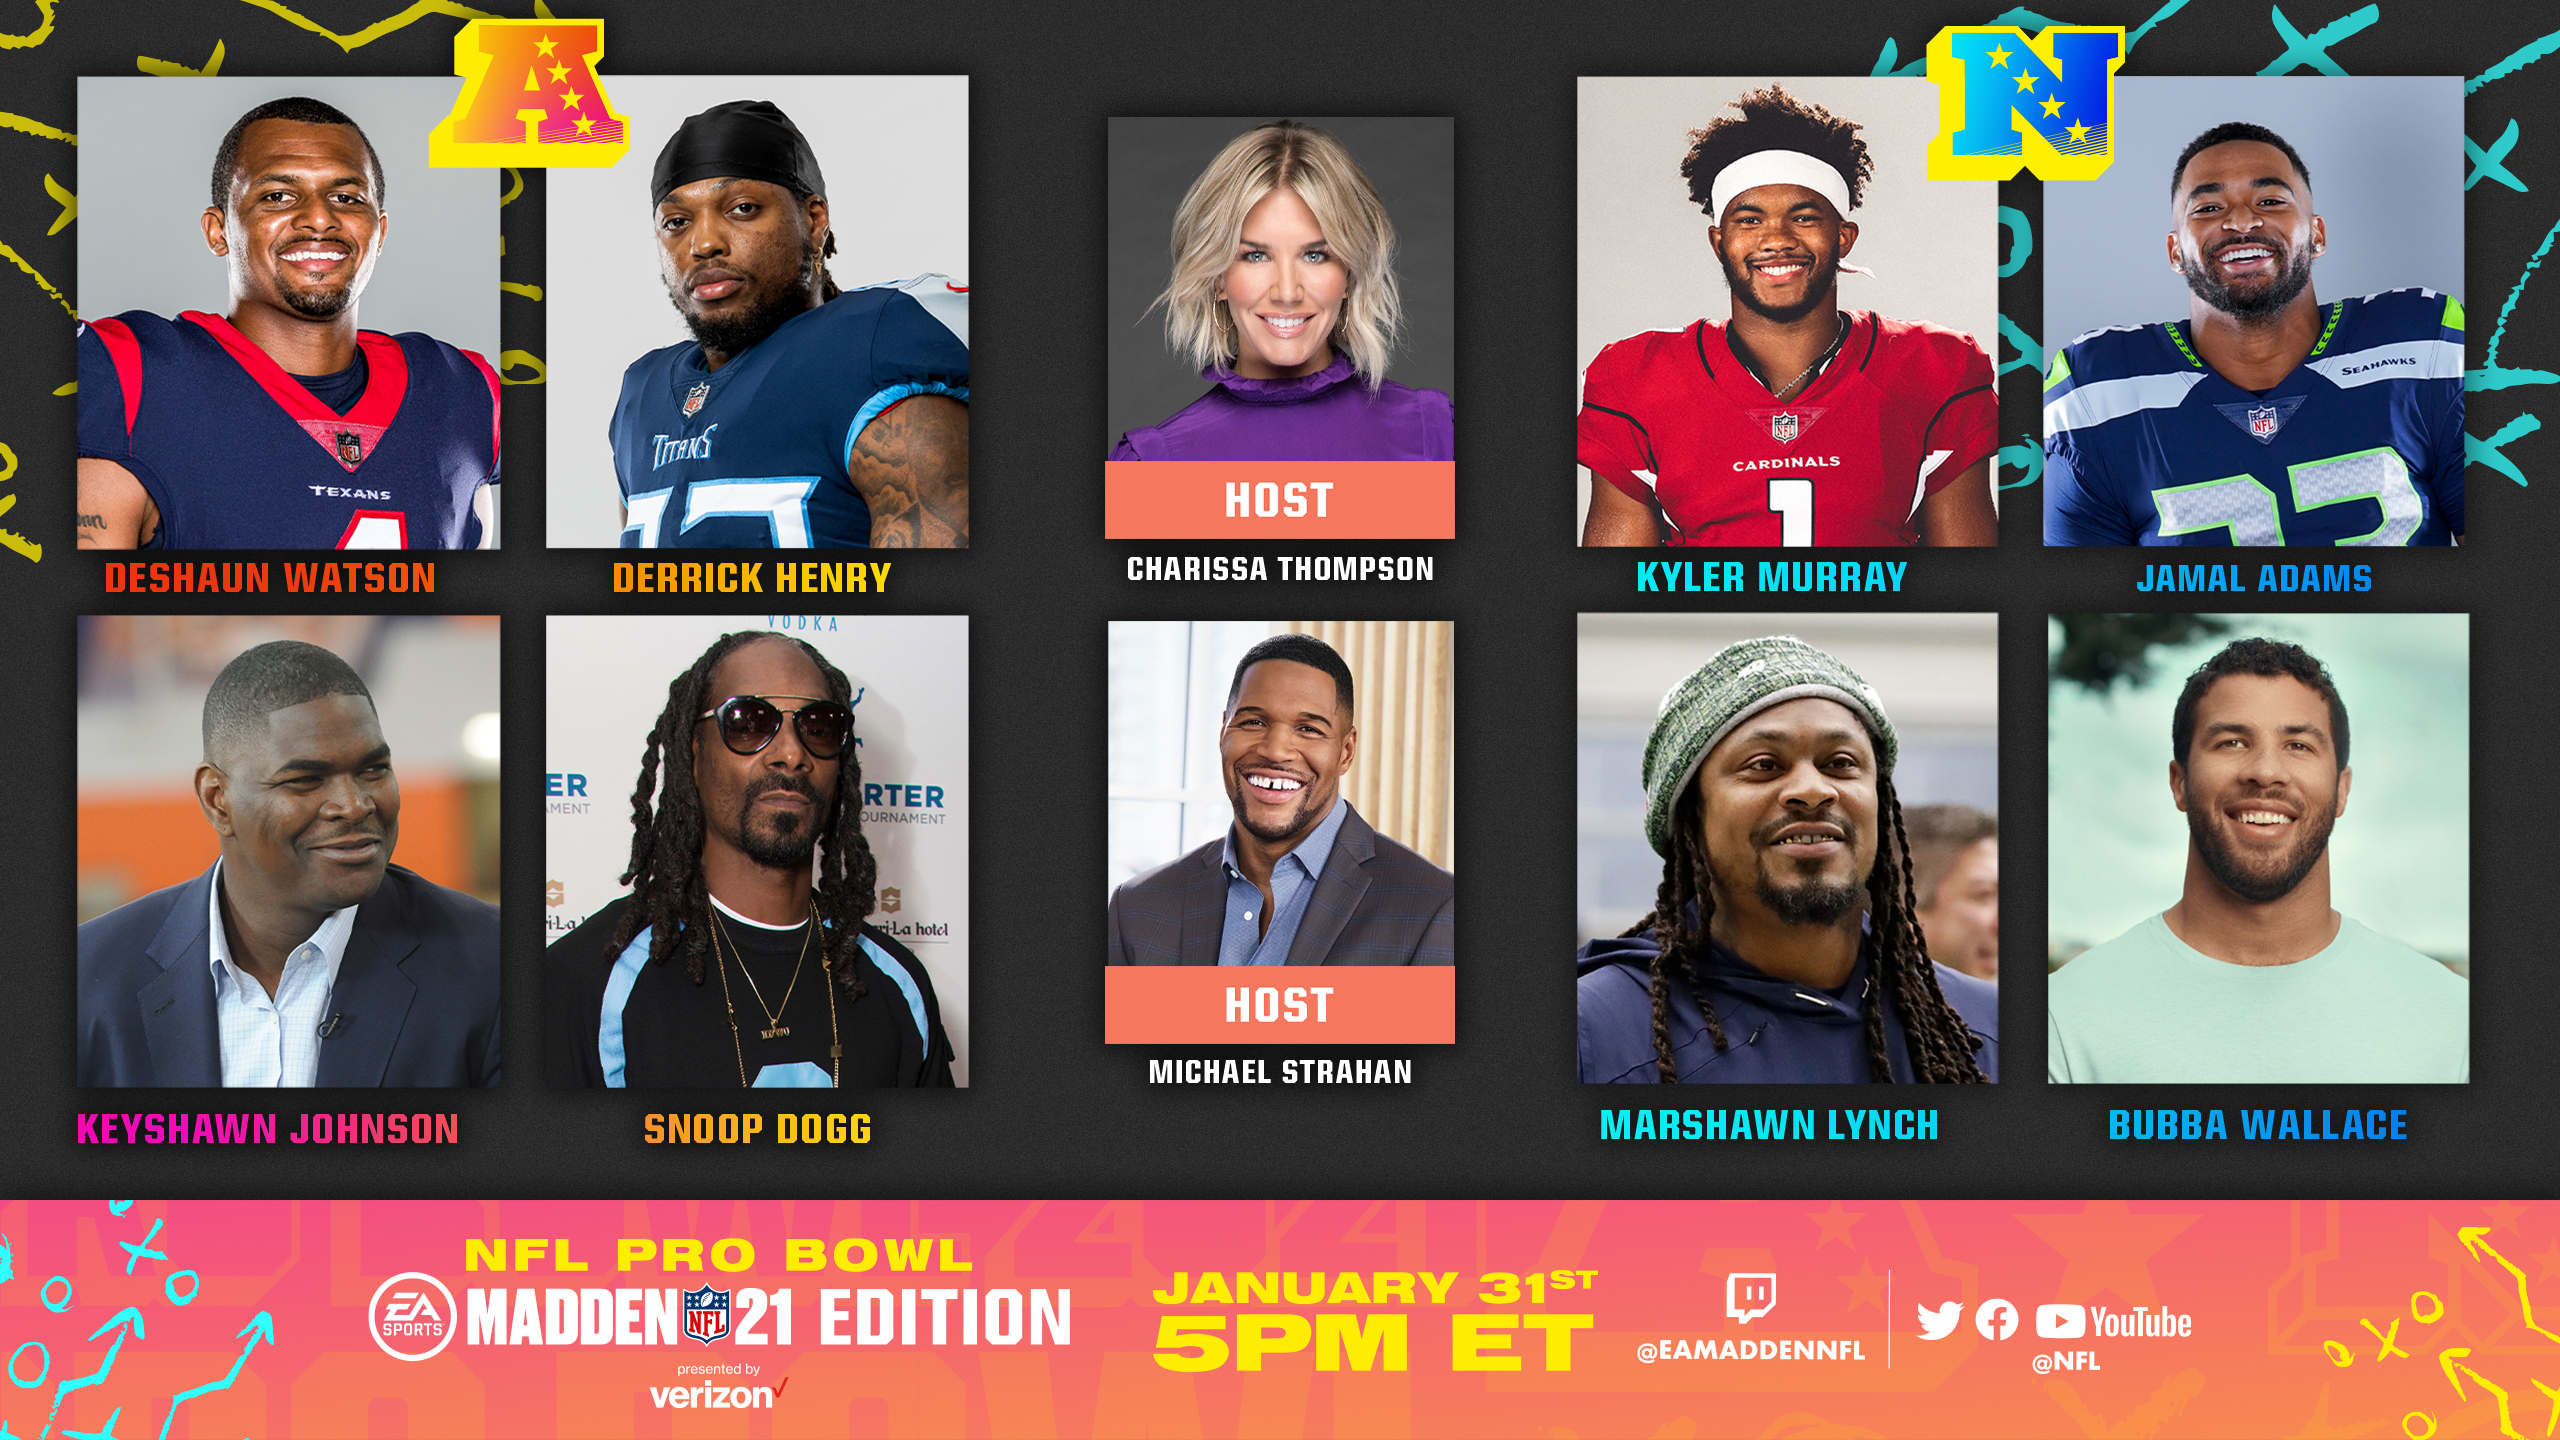 Snoop Dogg & More Headline Pro Bowl 2021: The 'Madden NFL 21' Edition